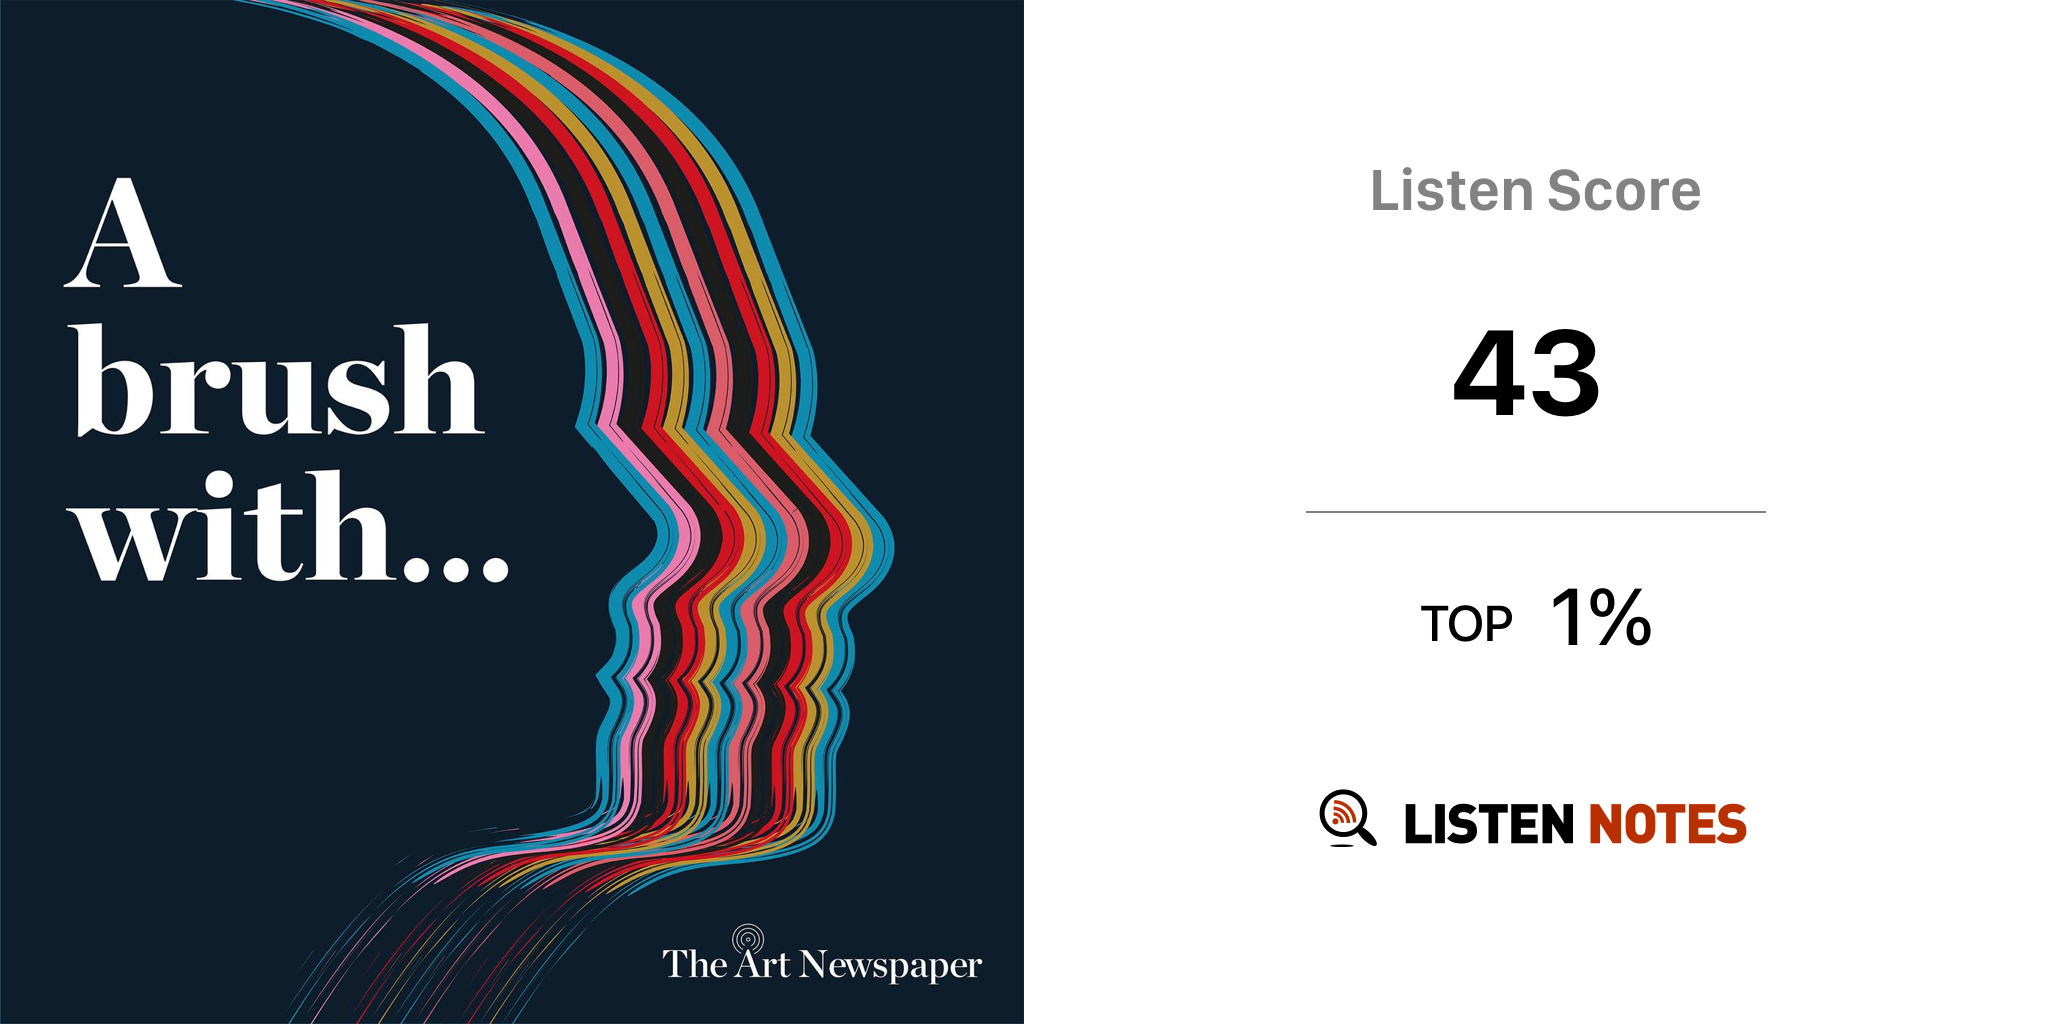 A brush with... podcast   The Art Newspaper   Listen Notes